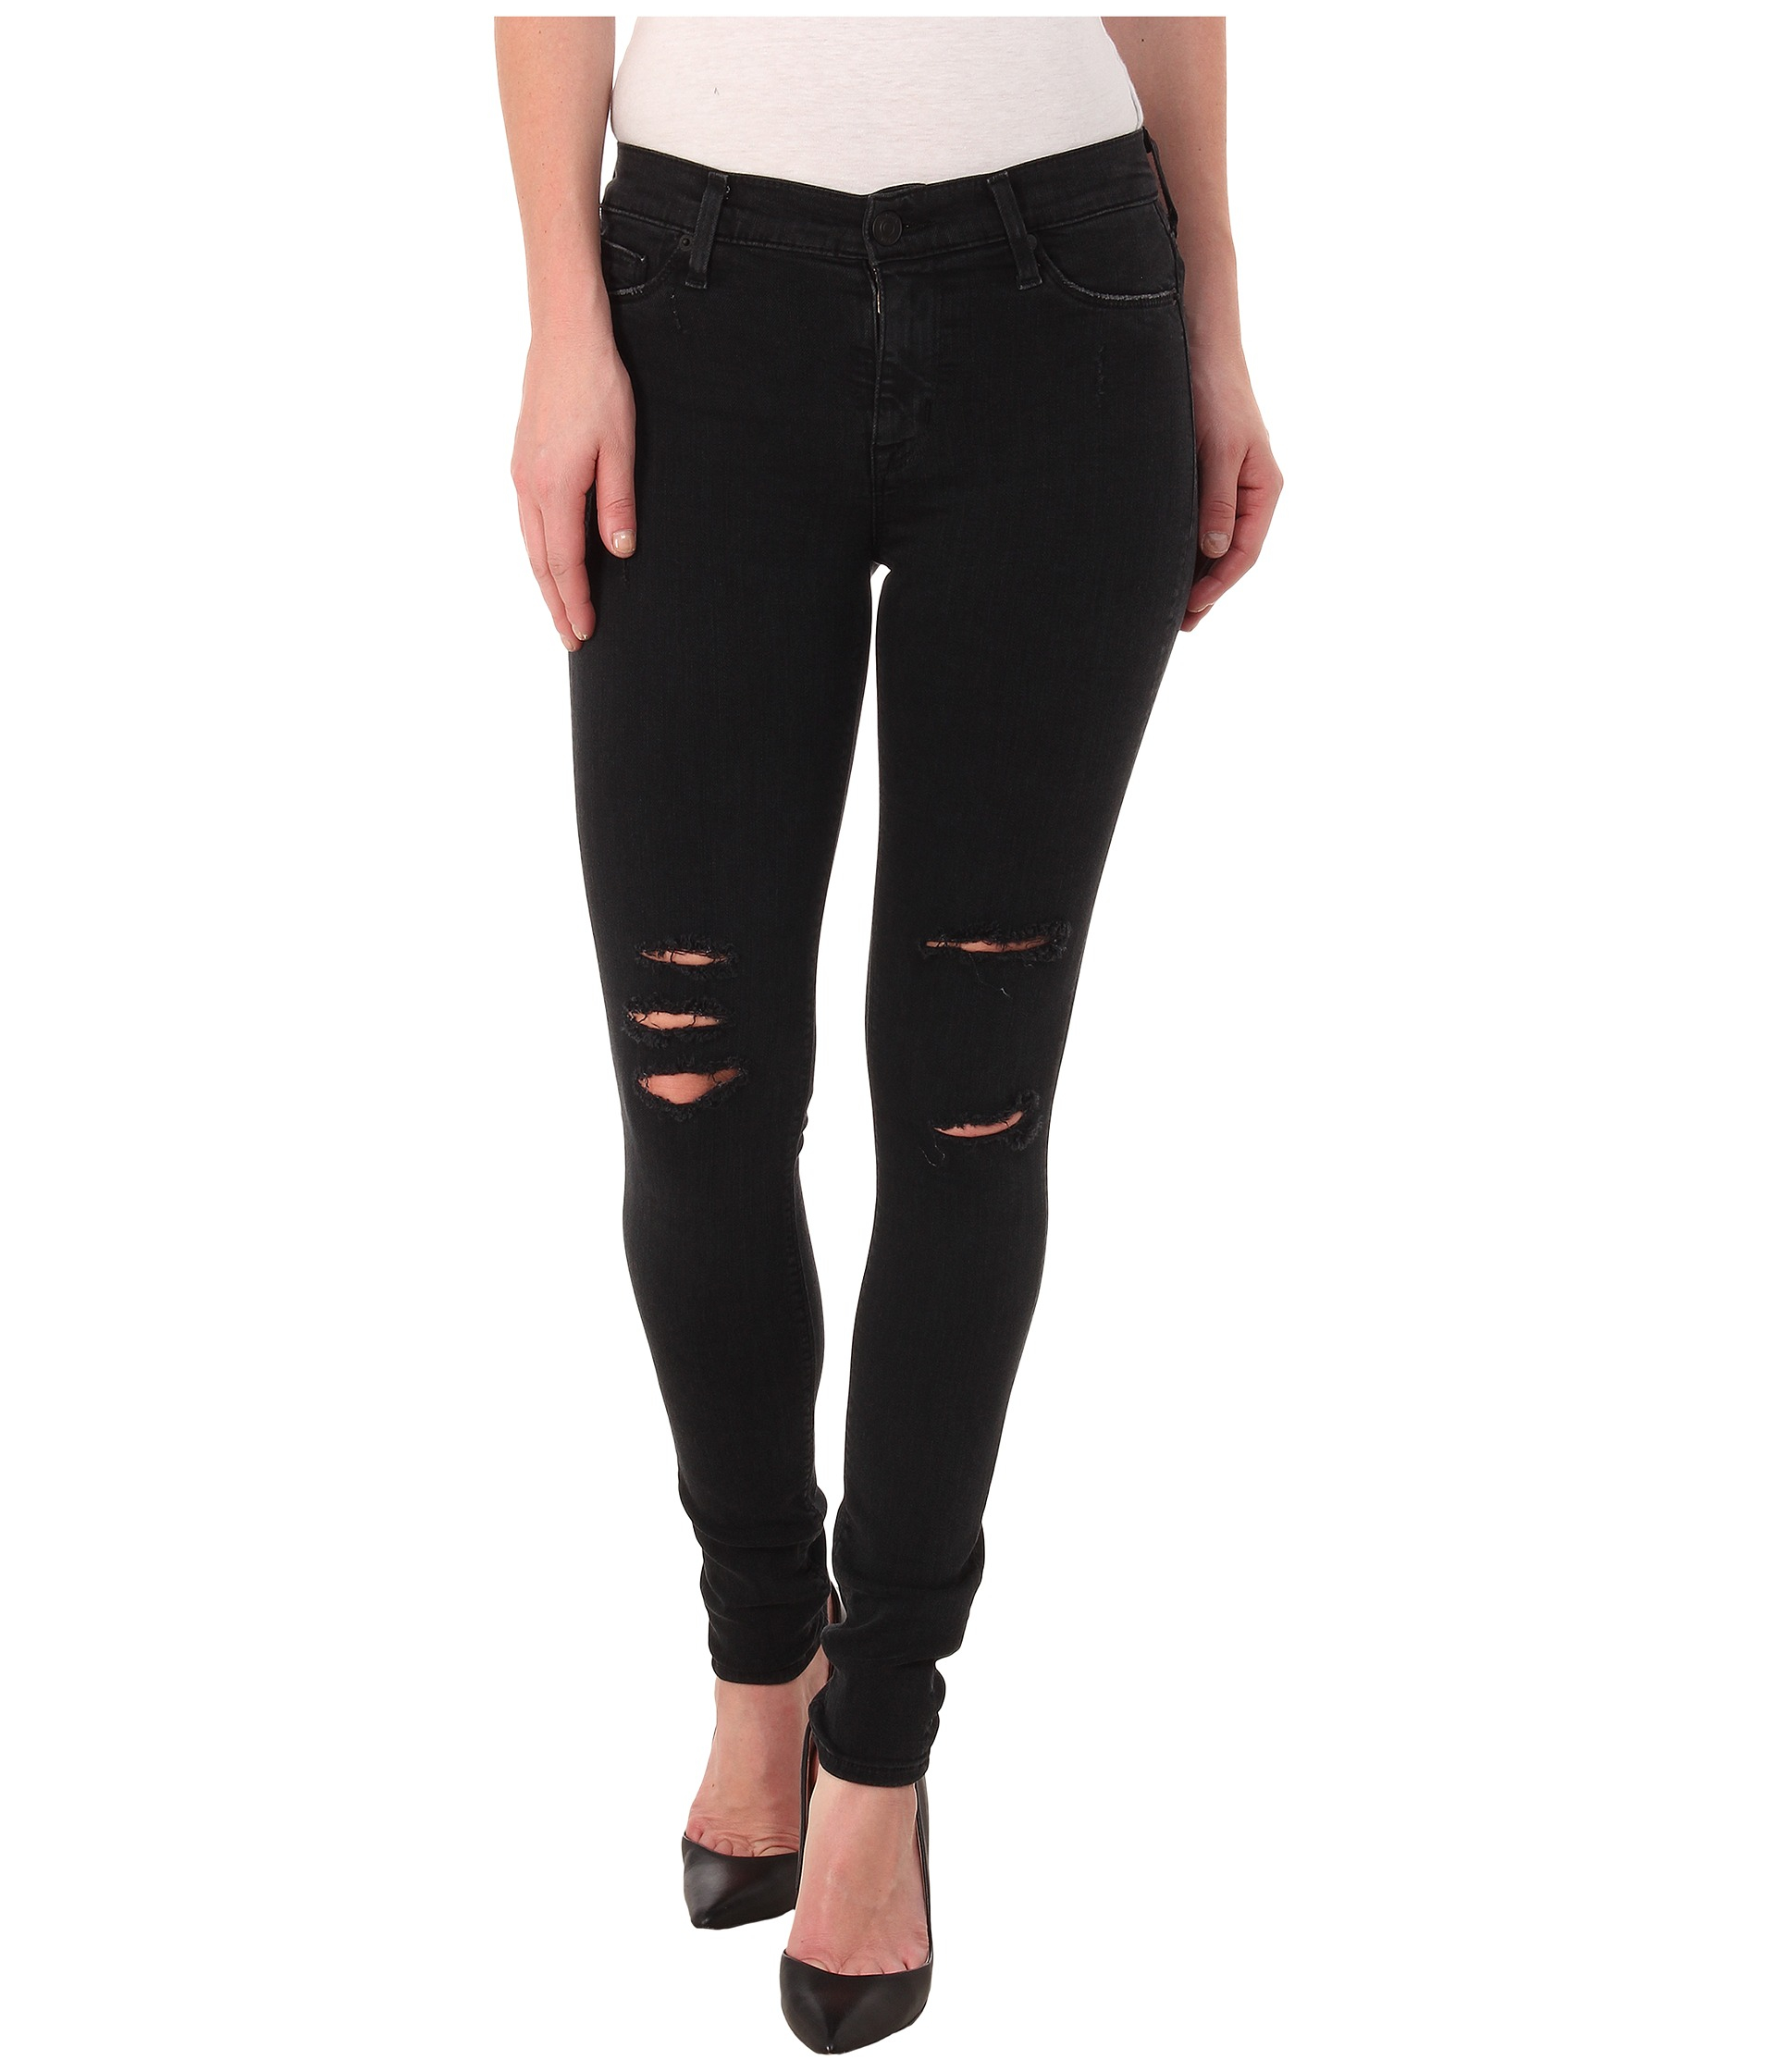 Hudson jeans Ginny Rolled Crop Jeans In Black in Black | Lyst